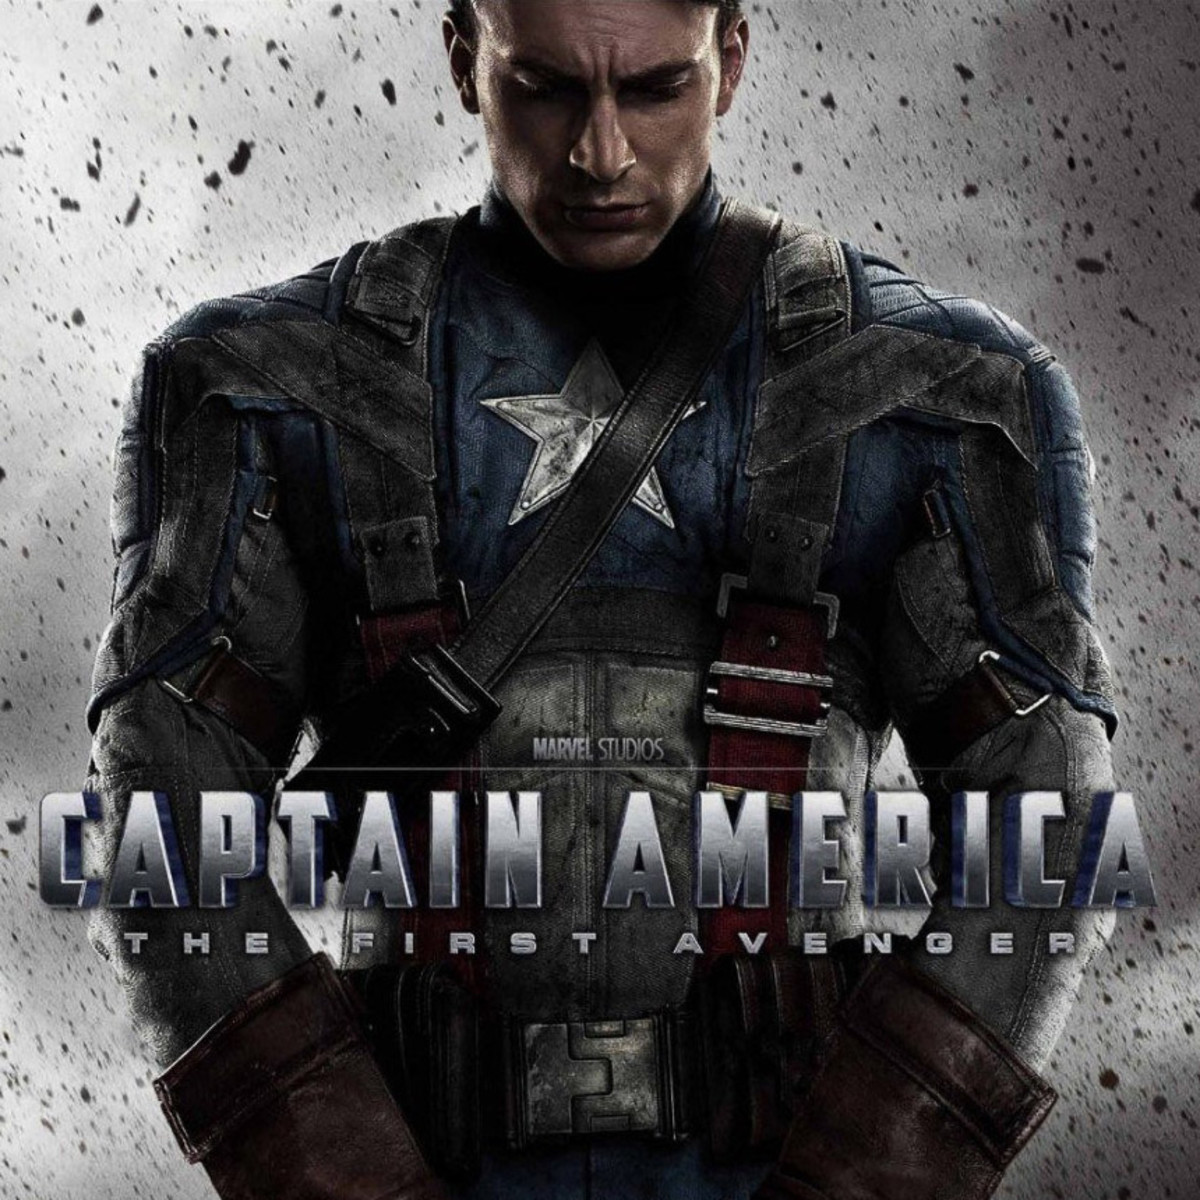 News_Summer preview_Captain America